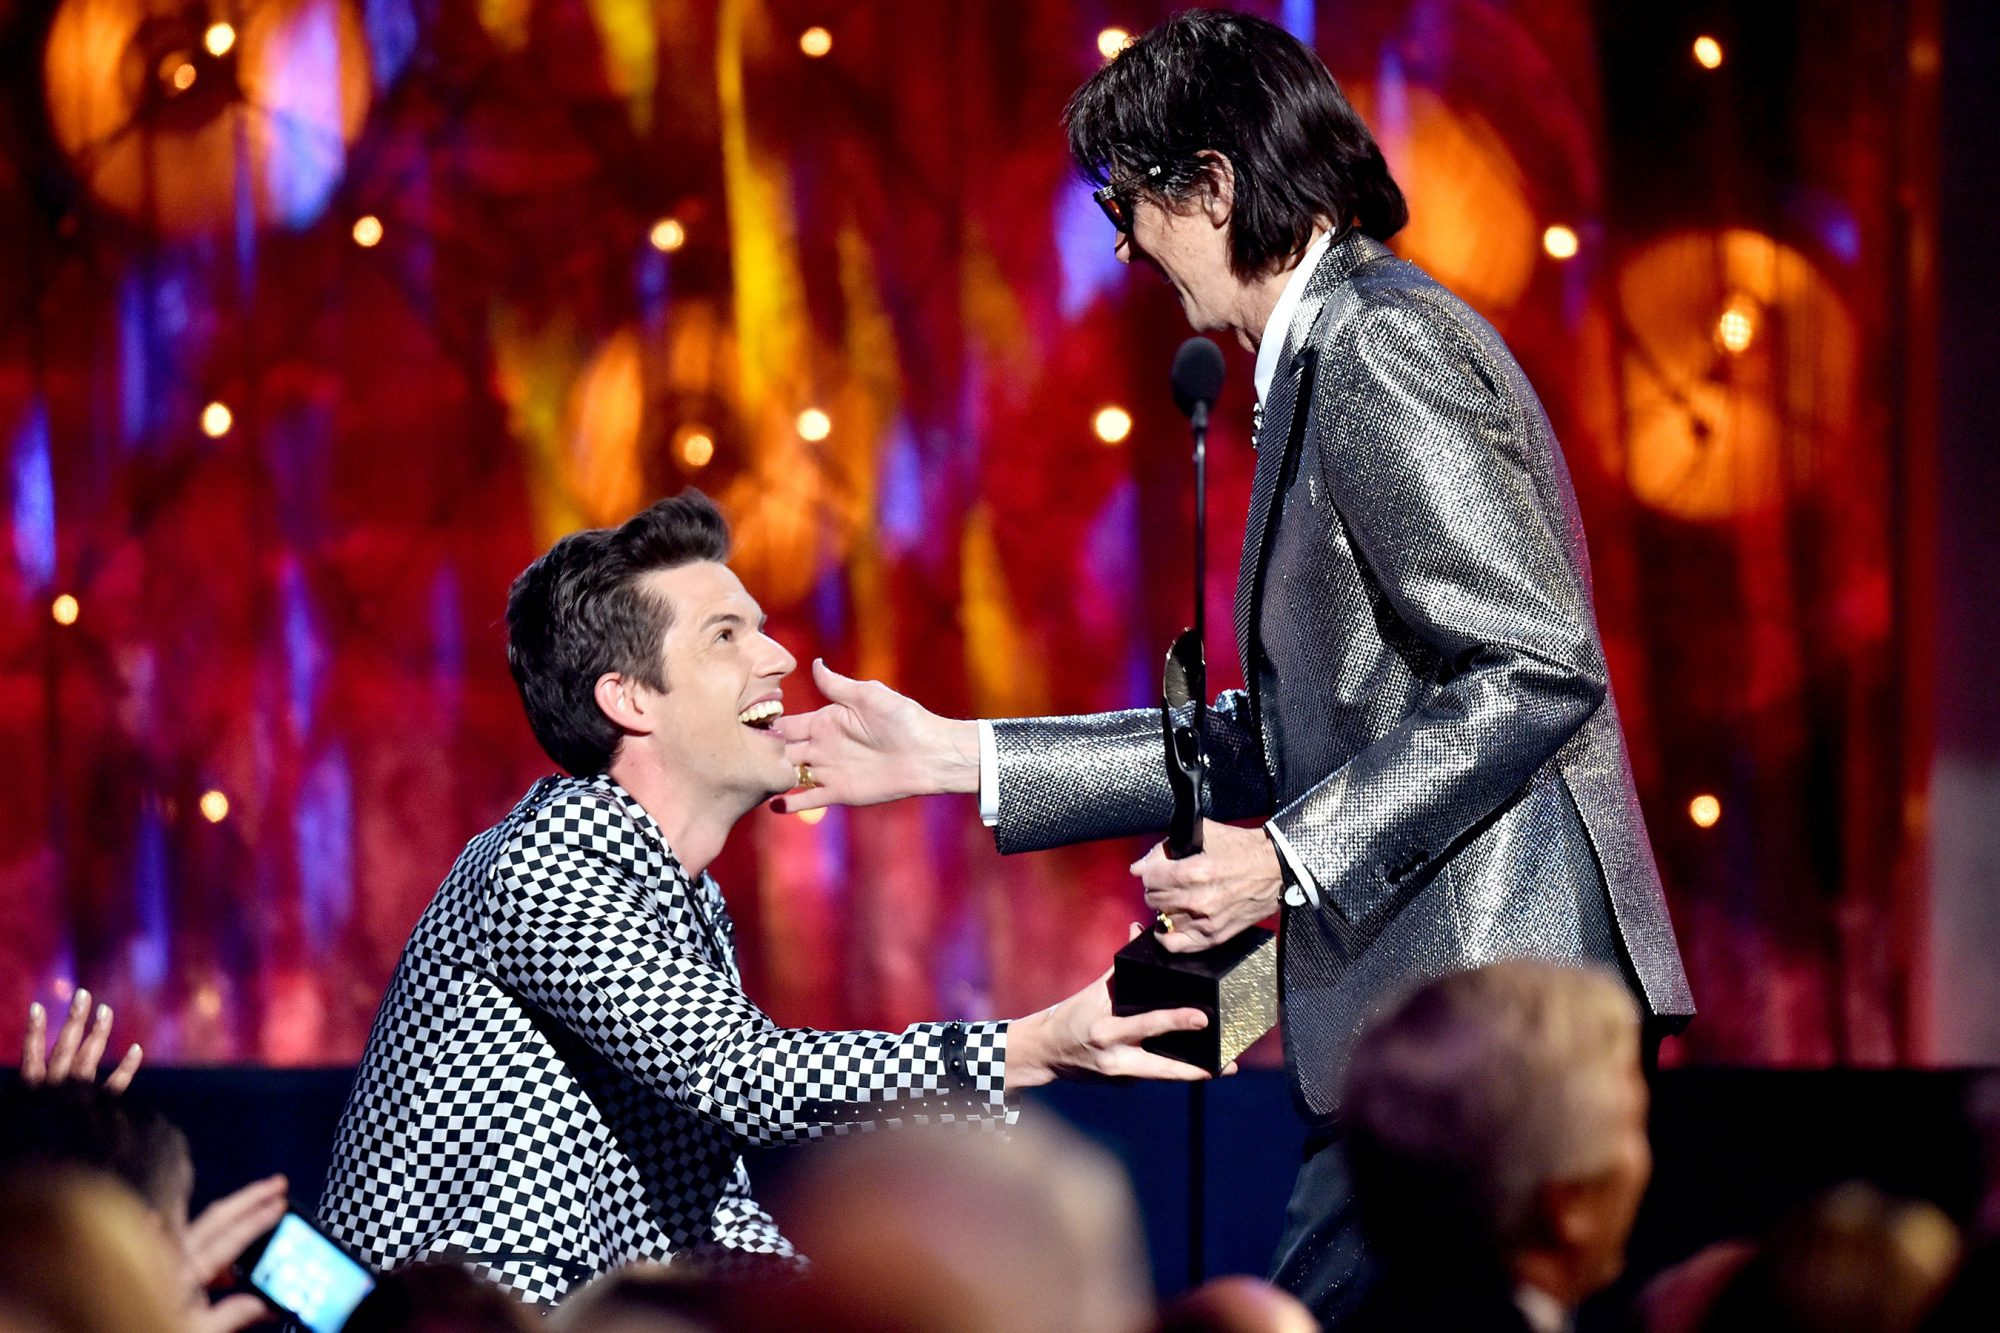 Rock & Roll Hall of Fame Induction Ceremony, Show, Cleveland, USA - 14 Apr 2018